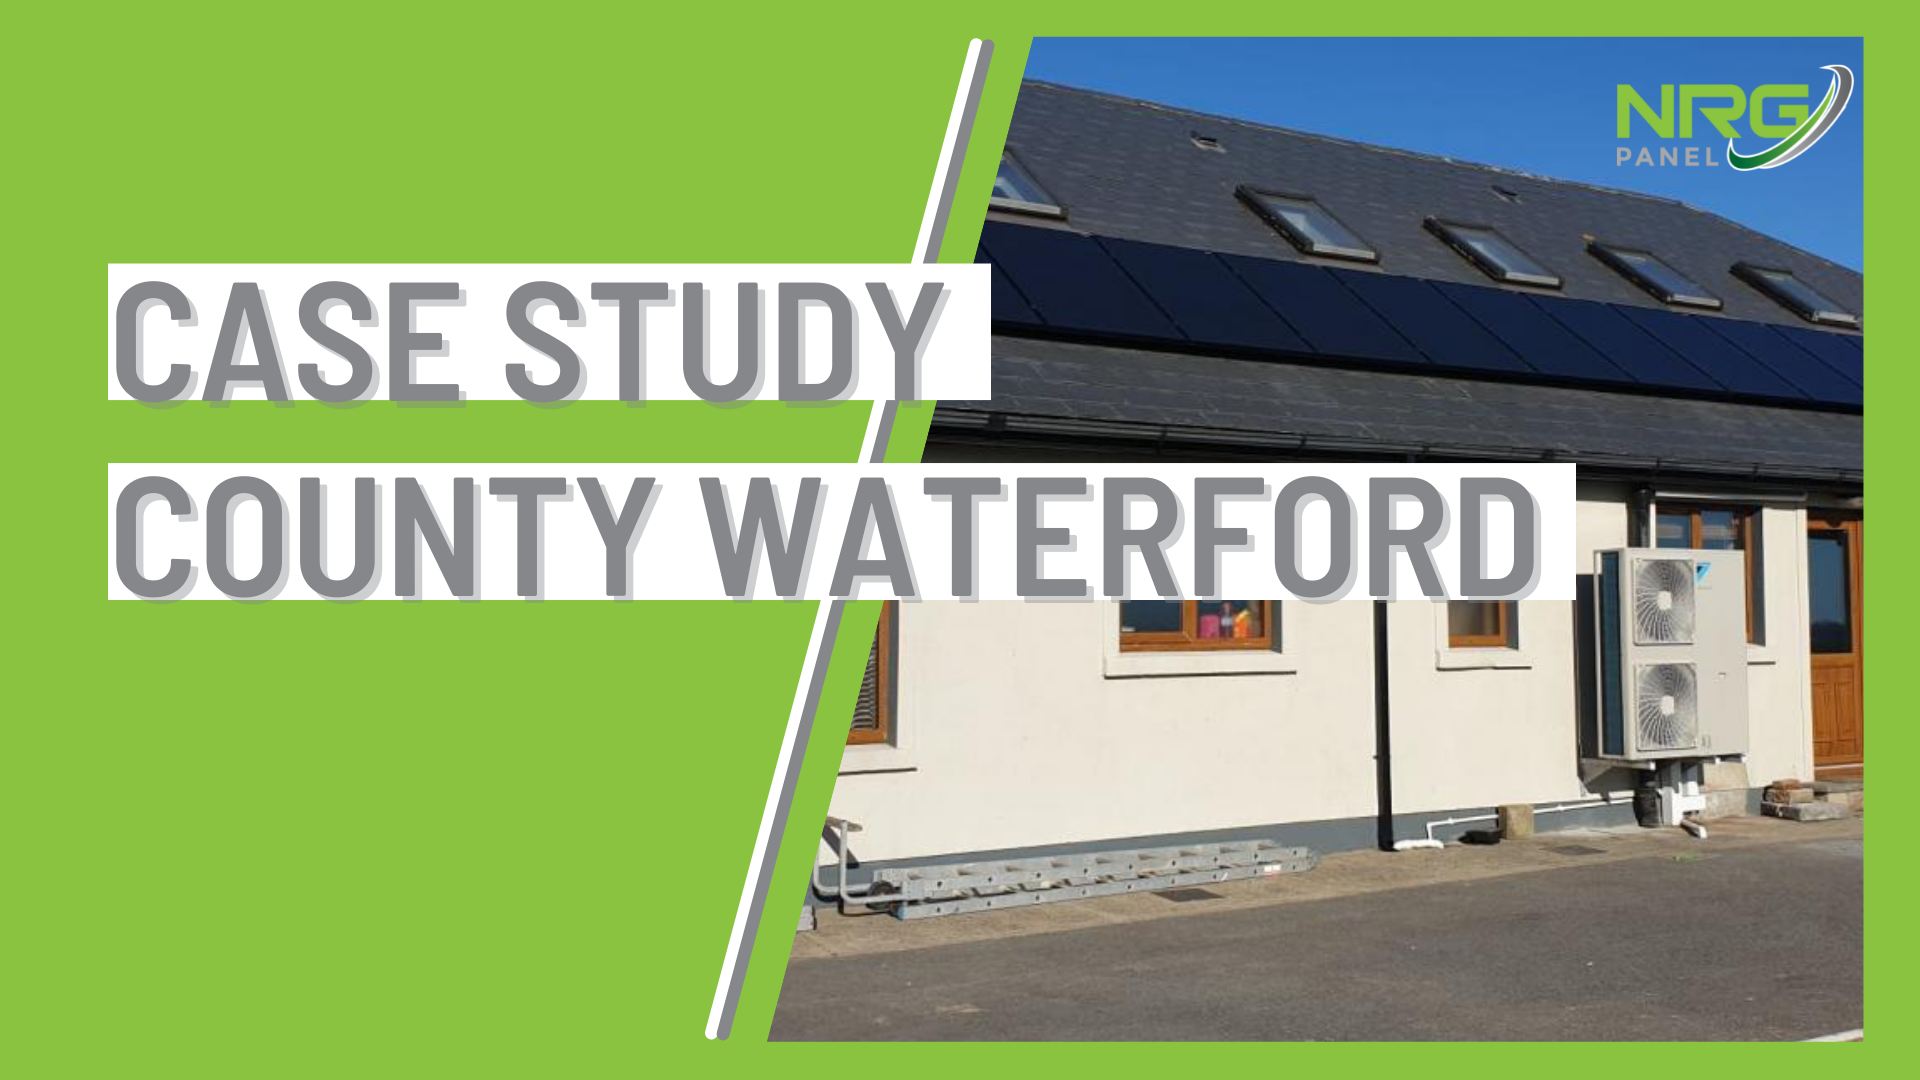 Case Study - Solar Panel Install Co. Waterford - NRG Panel - #1